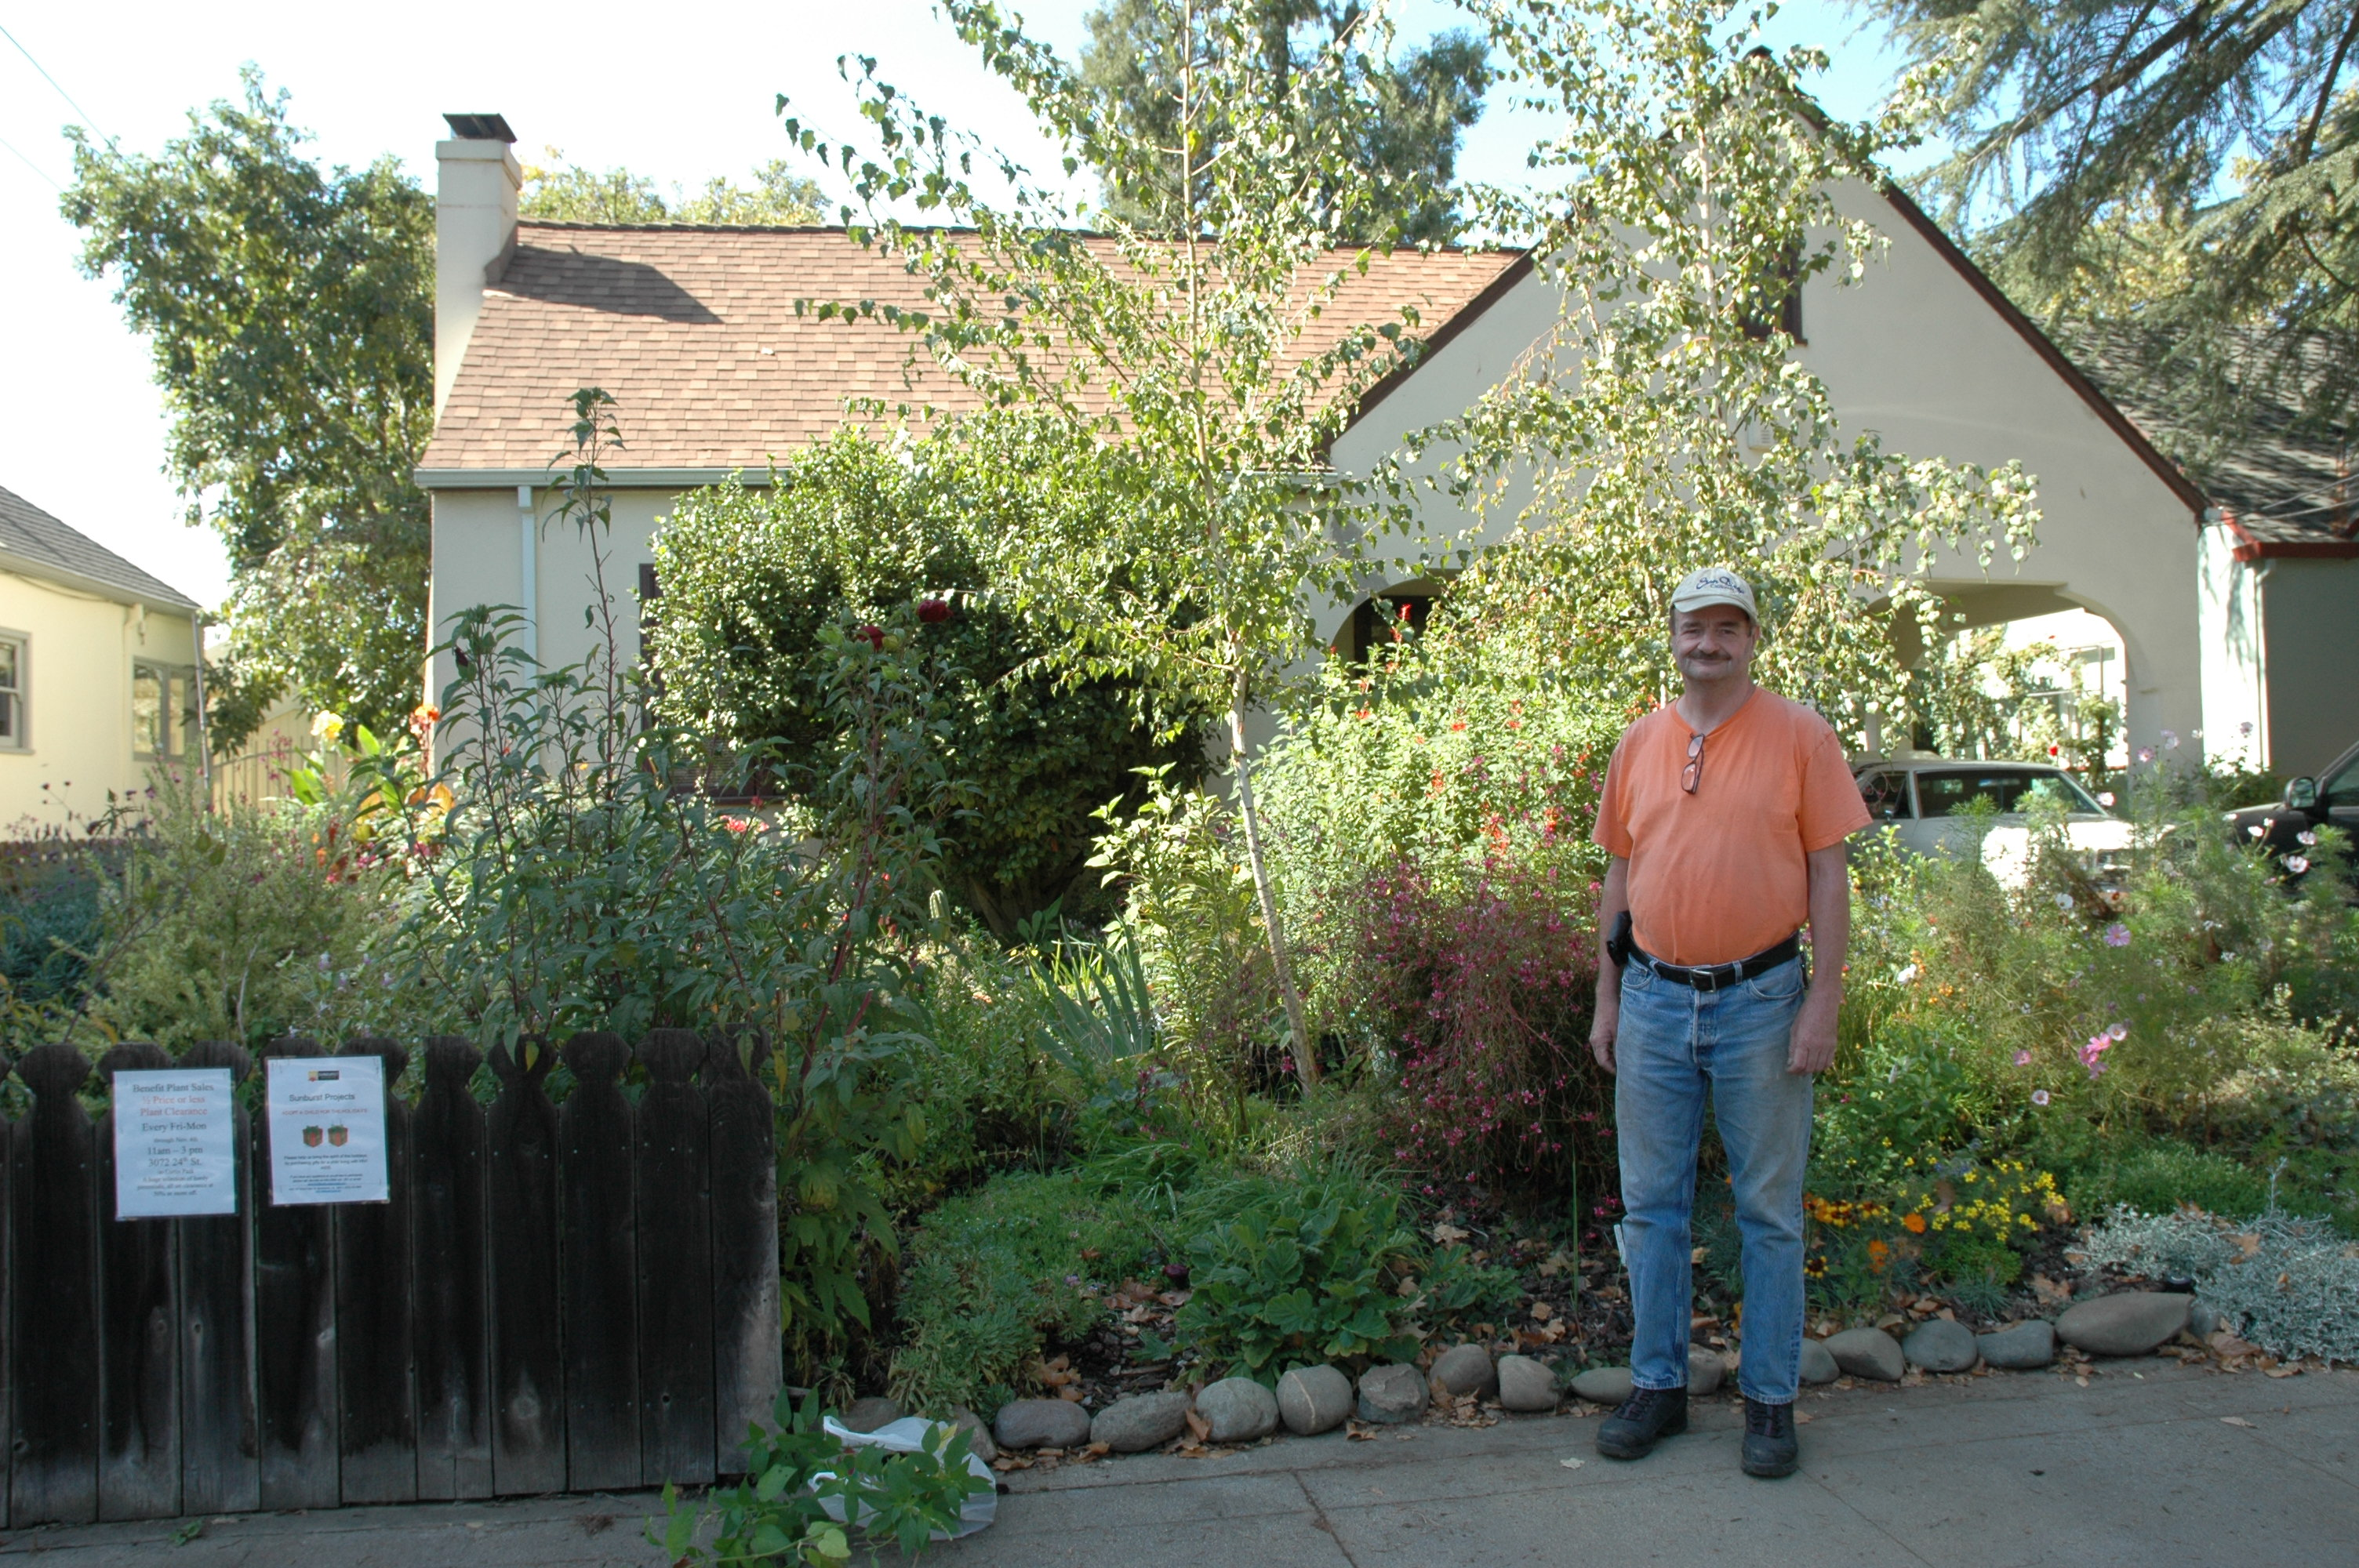 Bob Hamm Has Been Doing Plants Sales For More Than 20 Years That Benefit Sunburst Projects